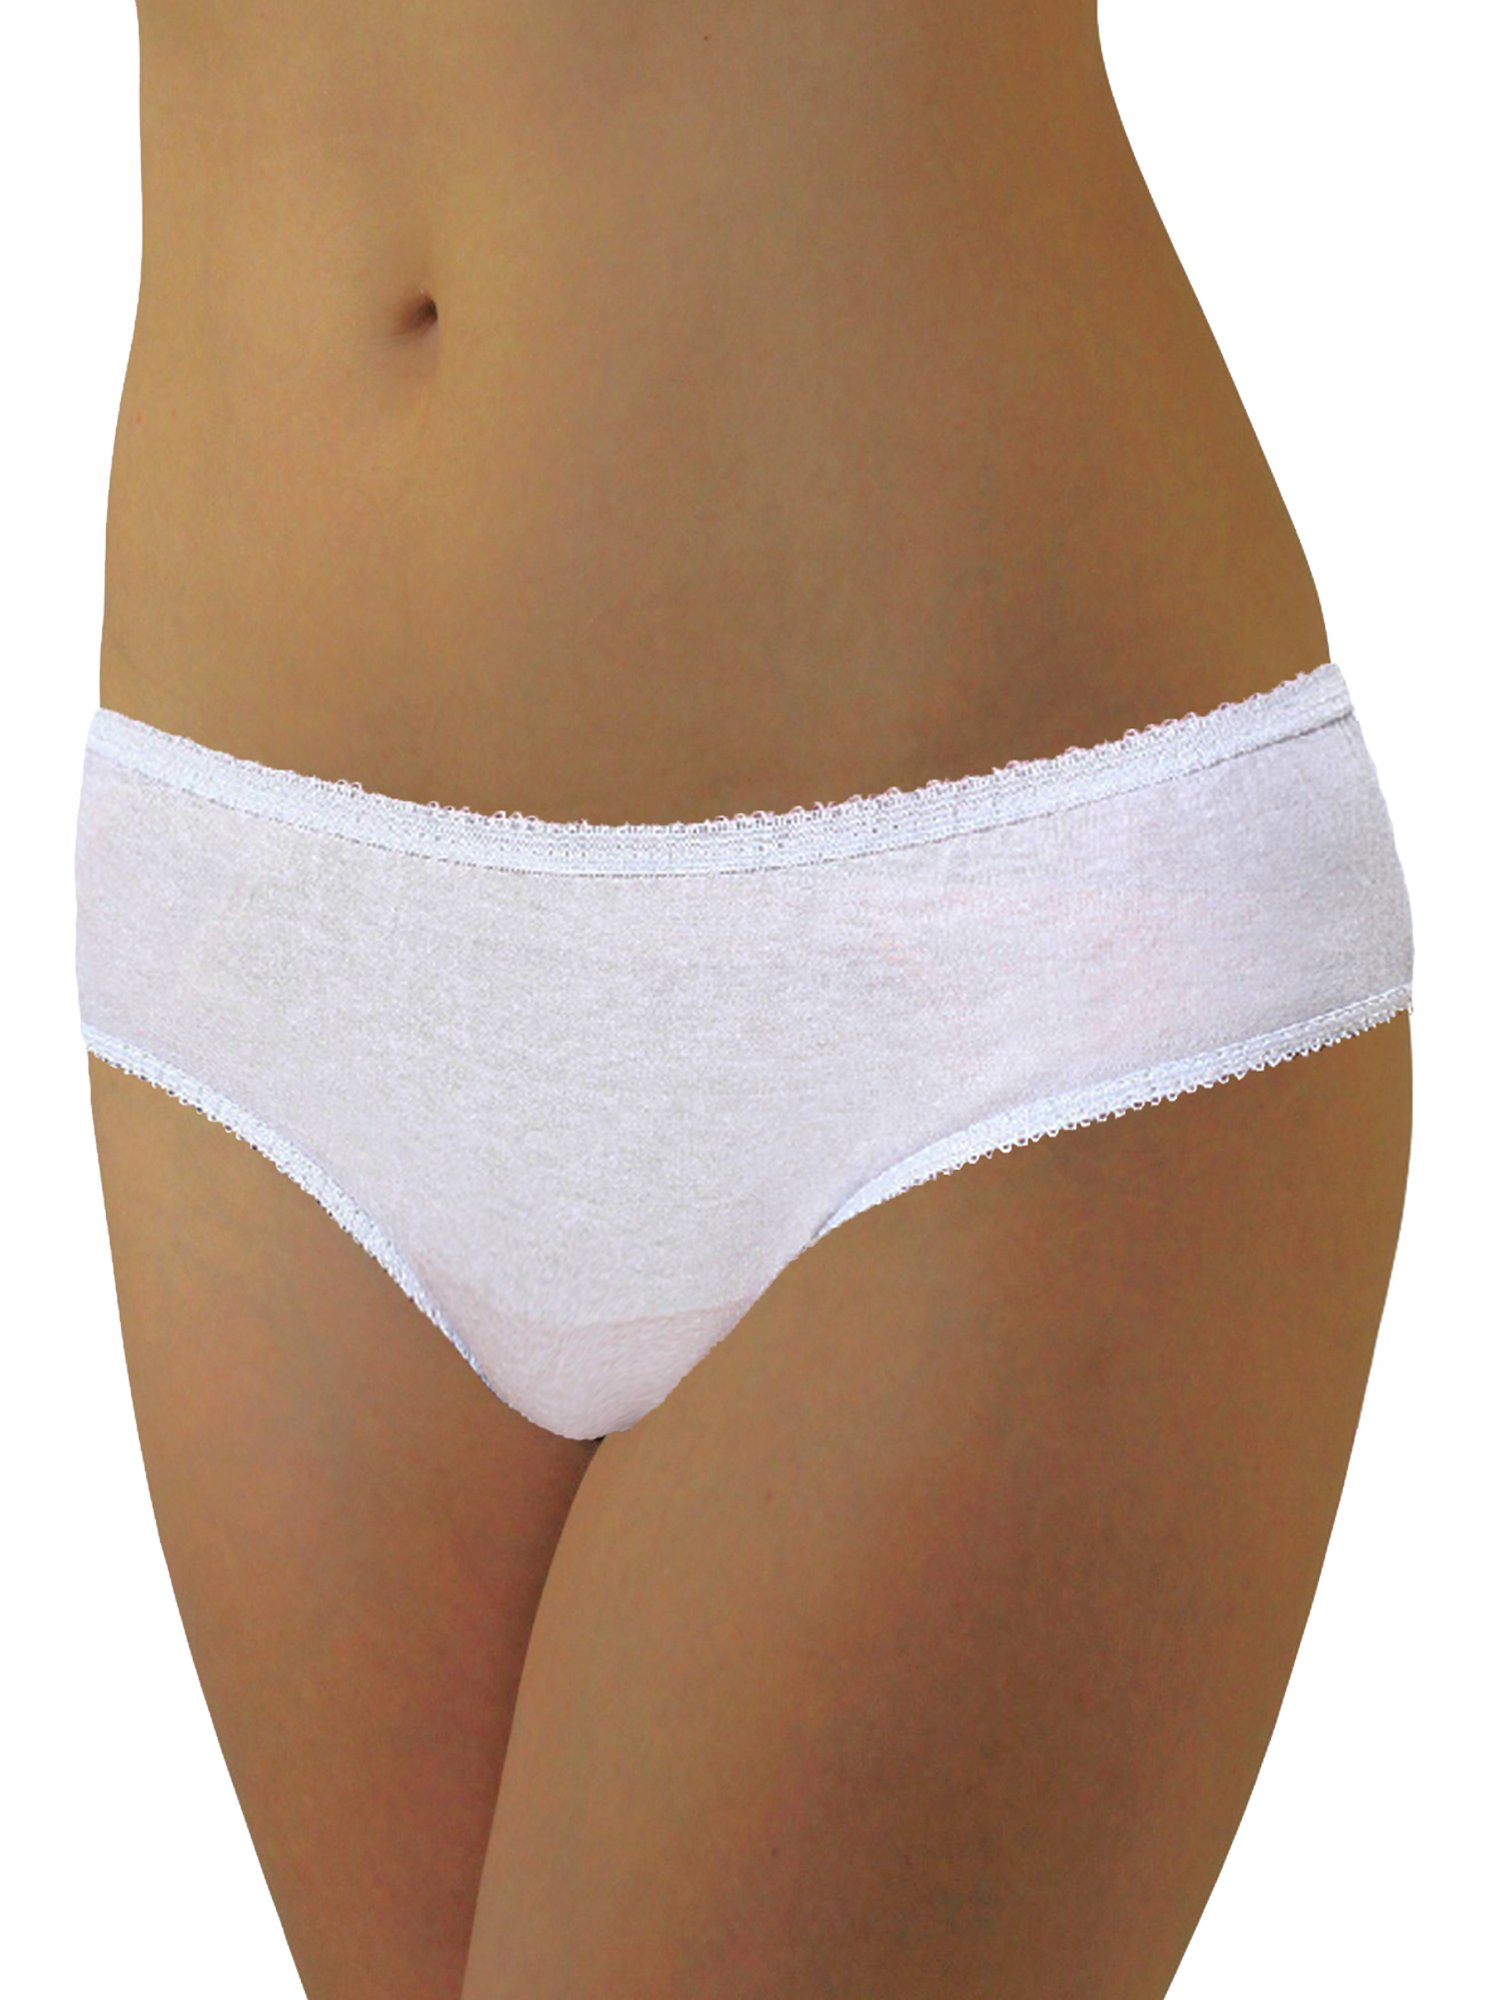 Womens Disposable 100% Cotton Underwear - for Travel- Hospital Stays- Emergencies White sm-20pk